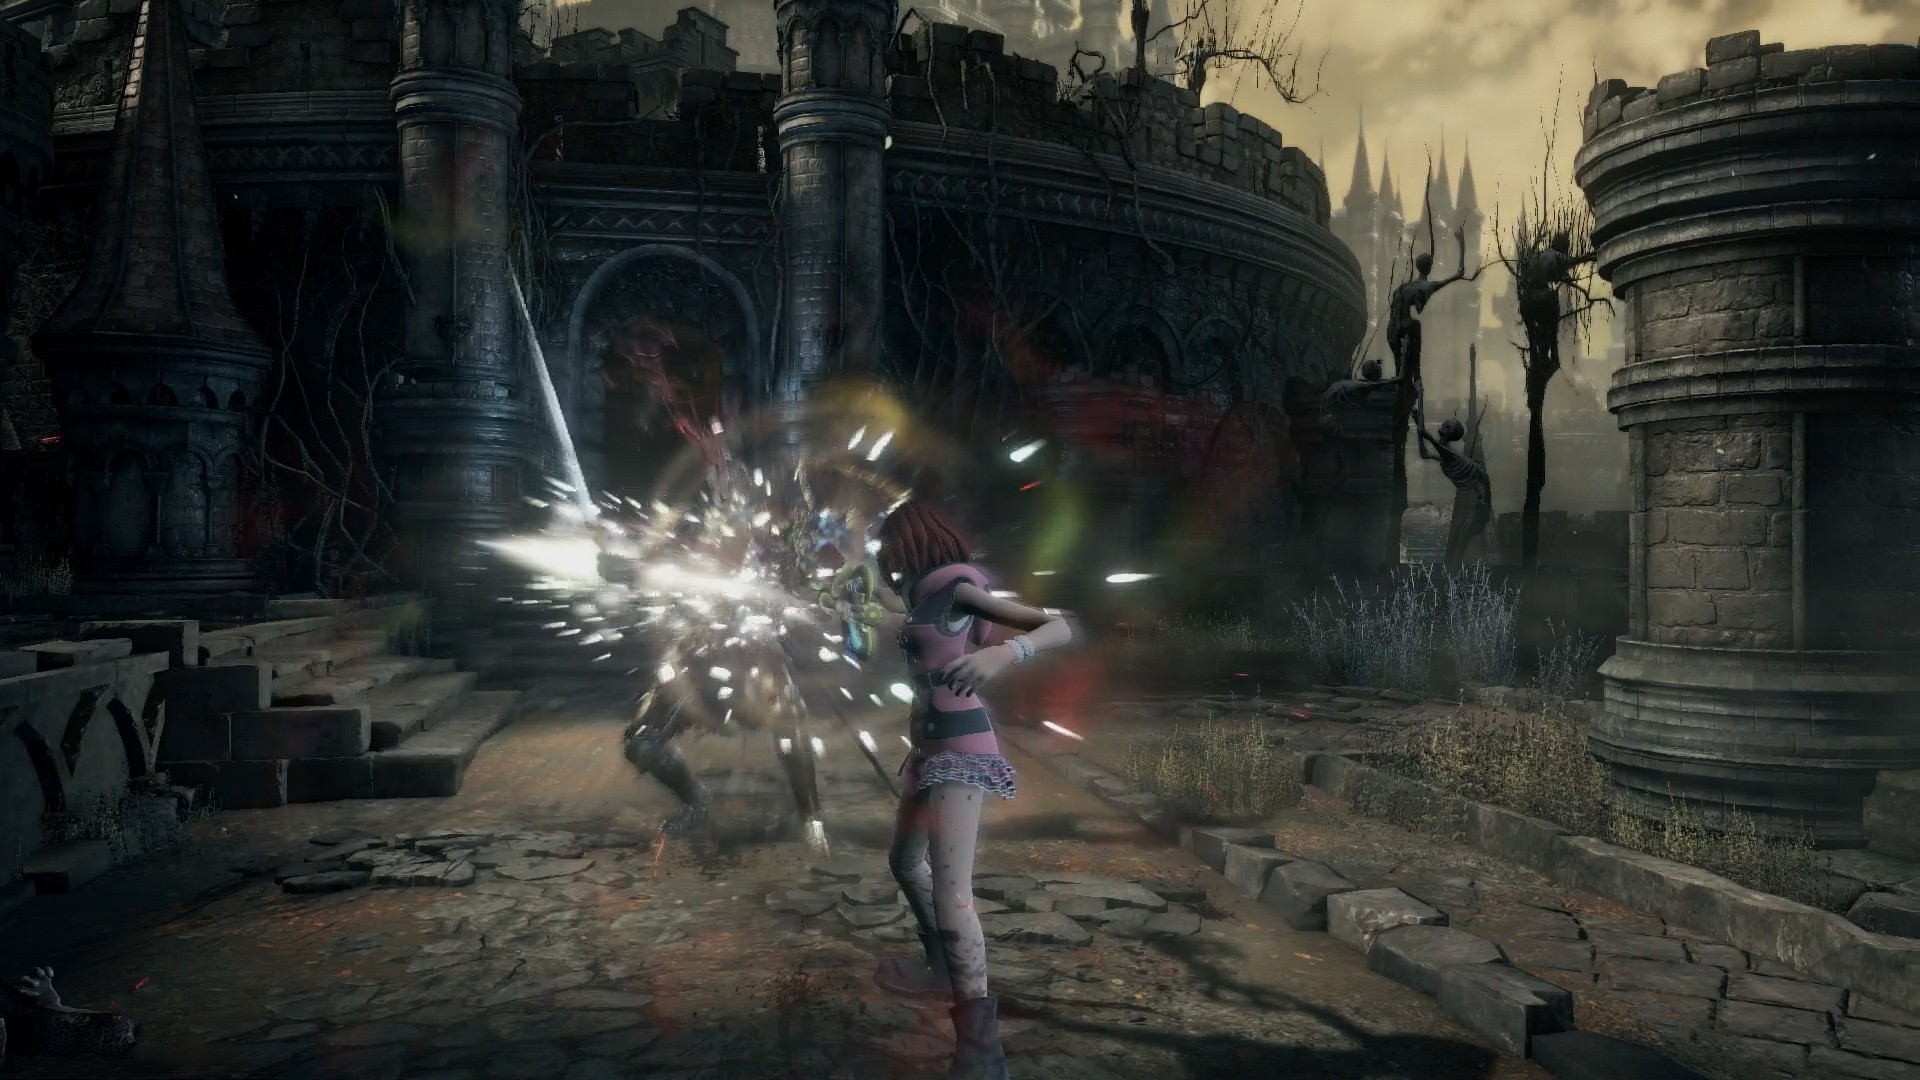 Face the ultimate heart of darkness with this Dark Souls III Kingdom Hearts mod screenshot